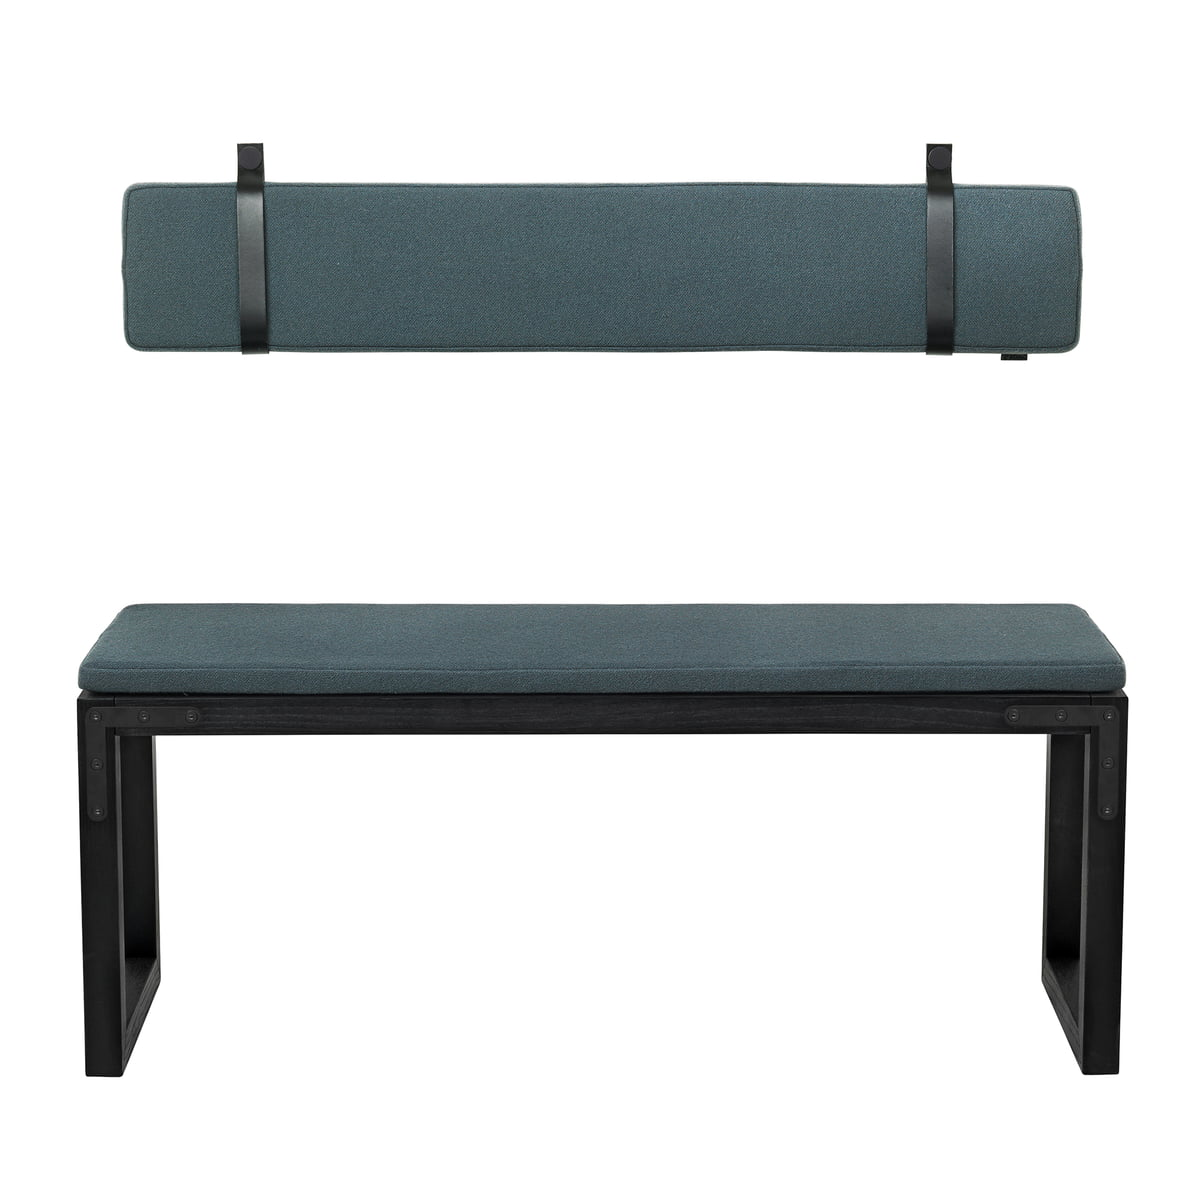 conekt bench from by lassen connox. Black Bedroom Furniture Sets. Home Design Ideas